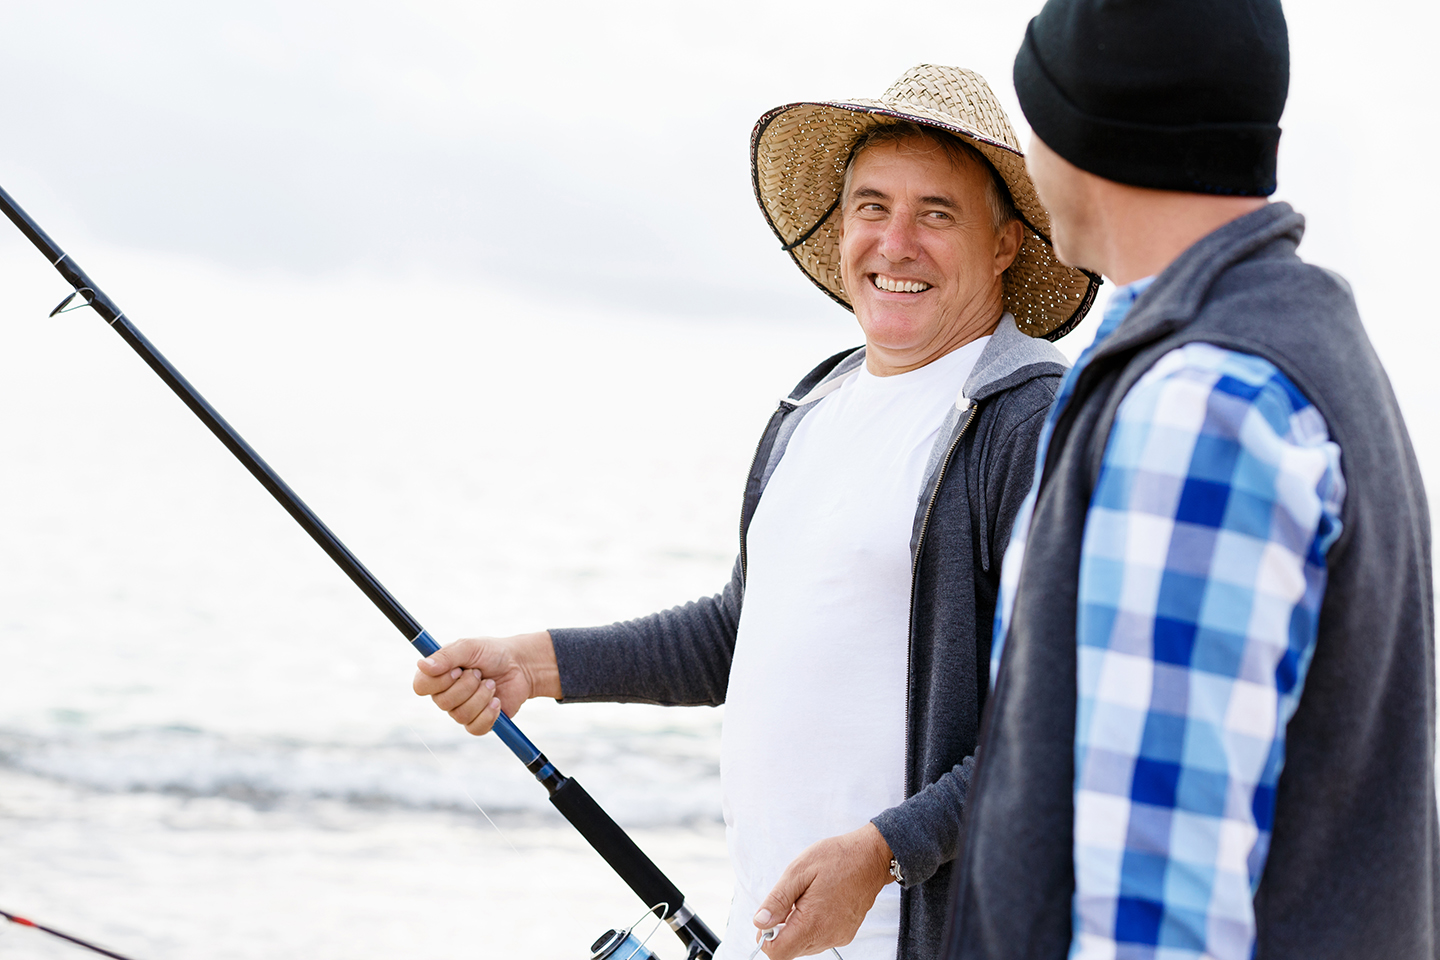 Two happy fishermen, one with a rod in his hand